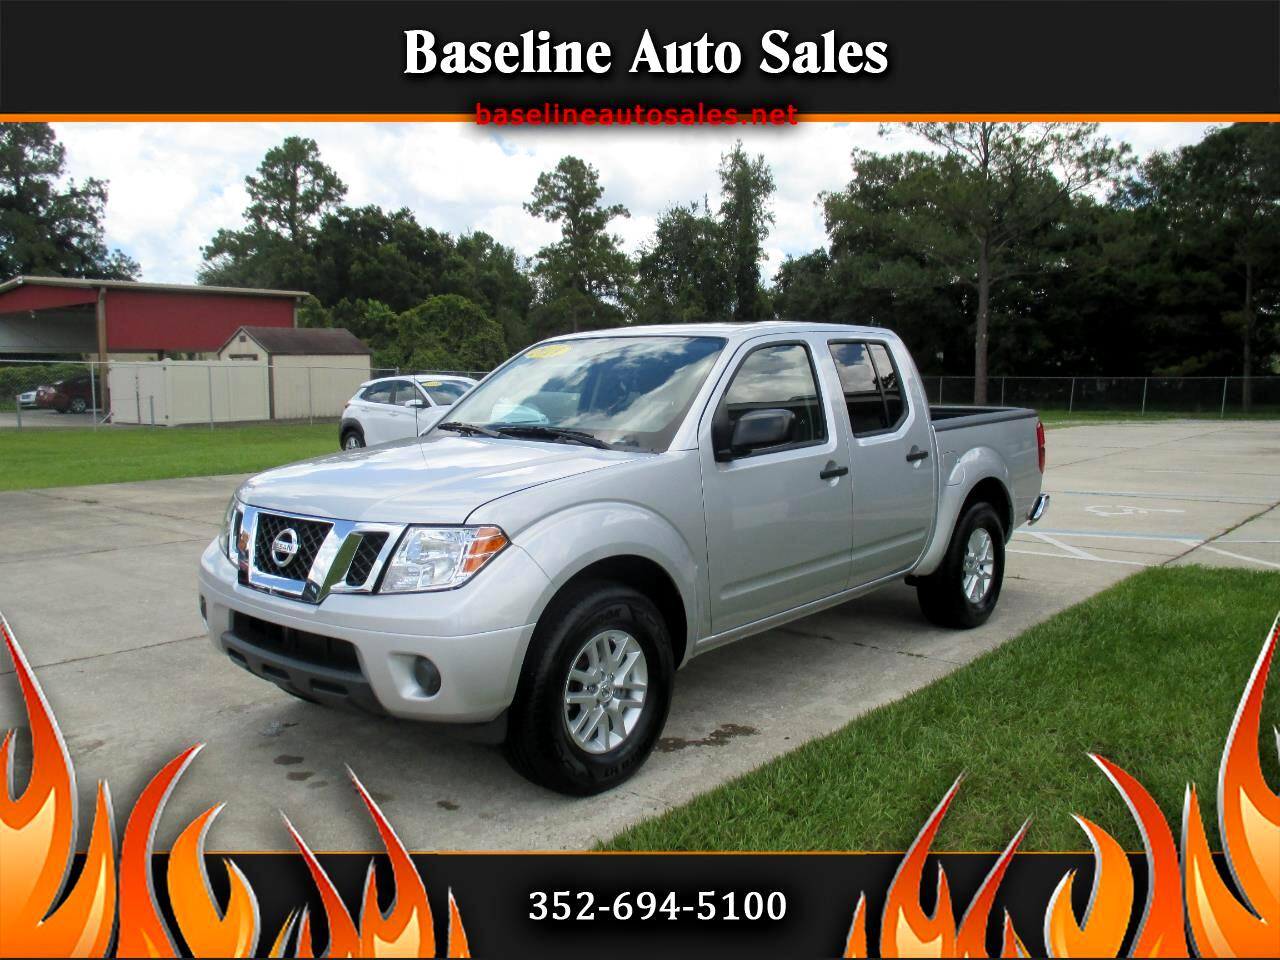 used 2019 nissan frontier sv crew for sale in ocala fl 34480 baseline auto sales baseline auto sales